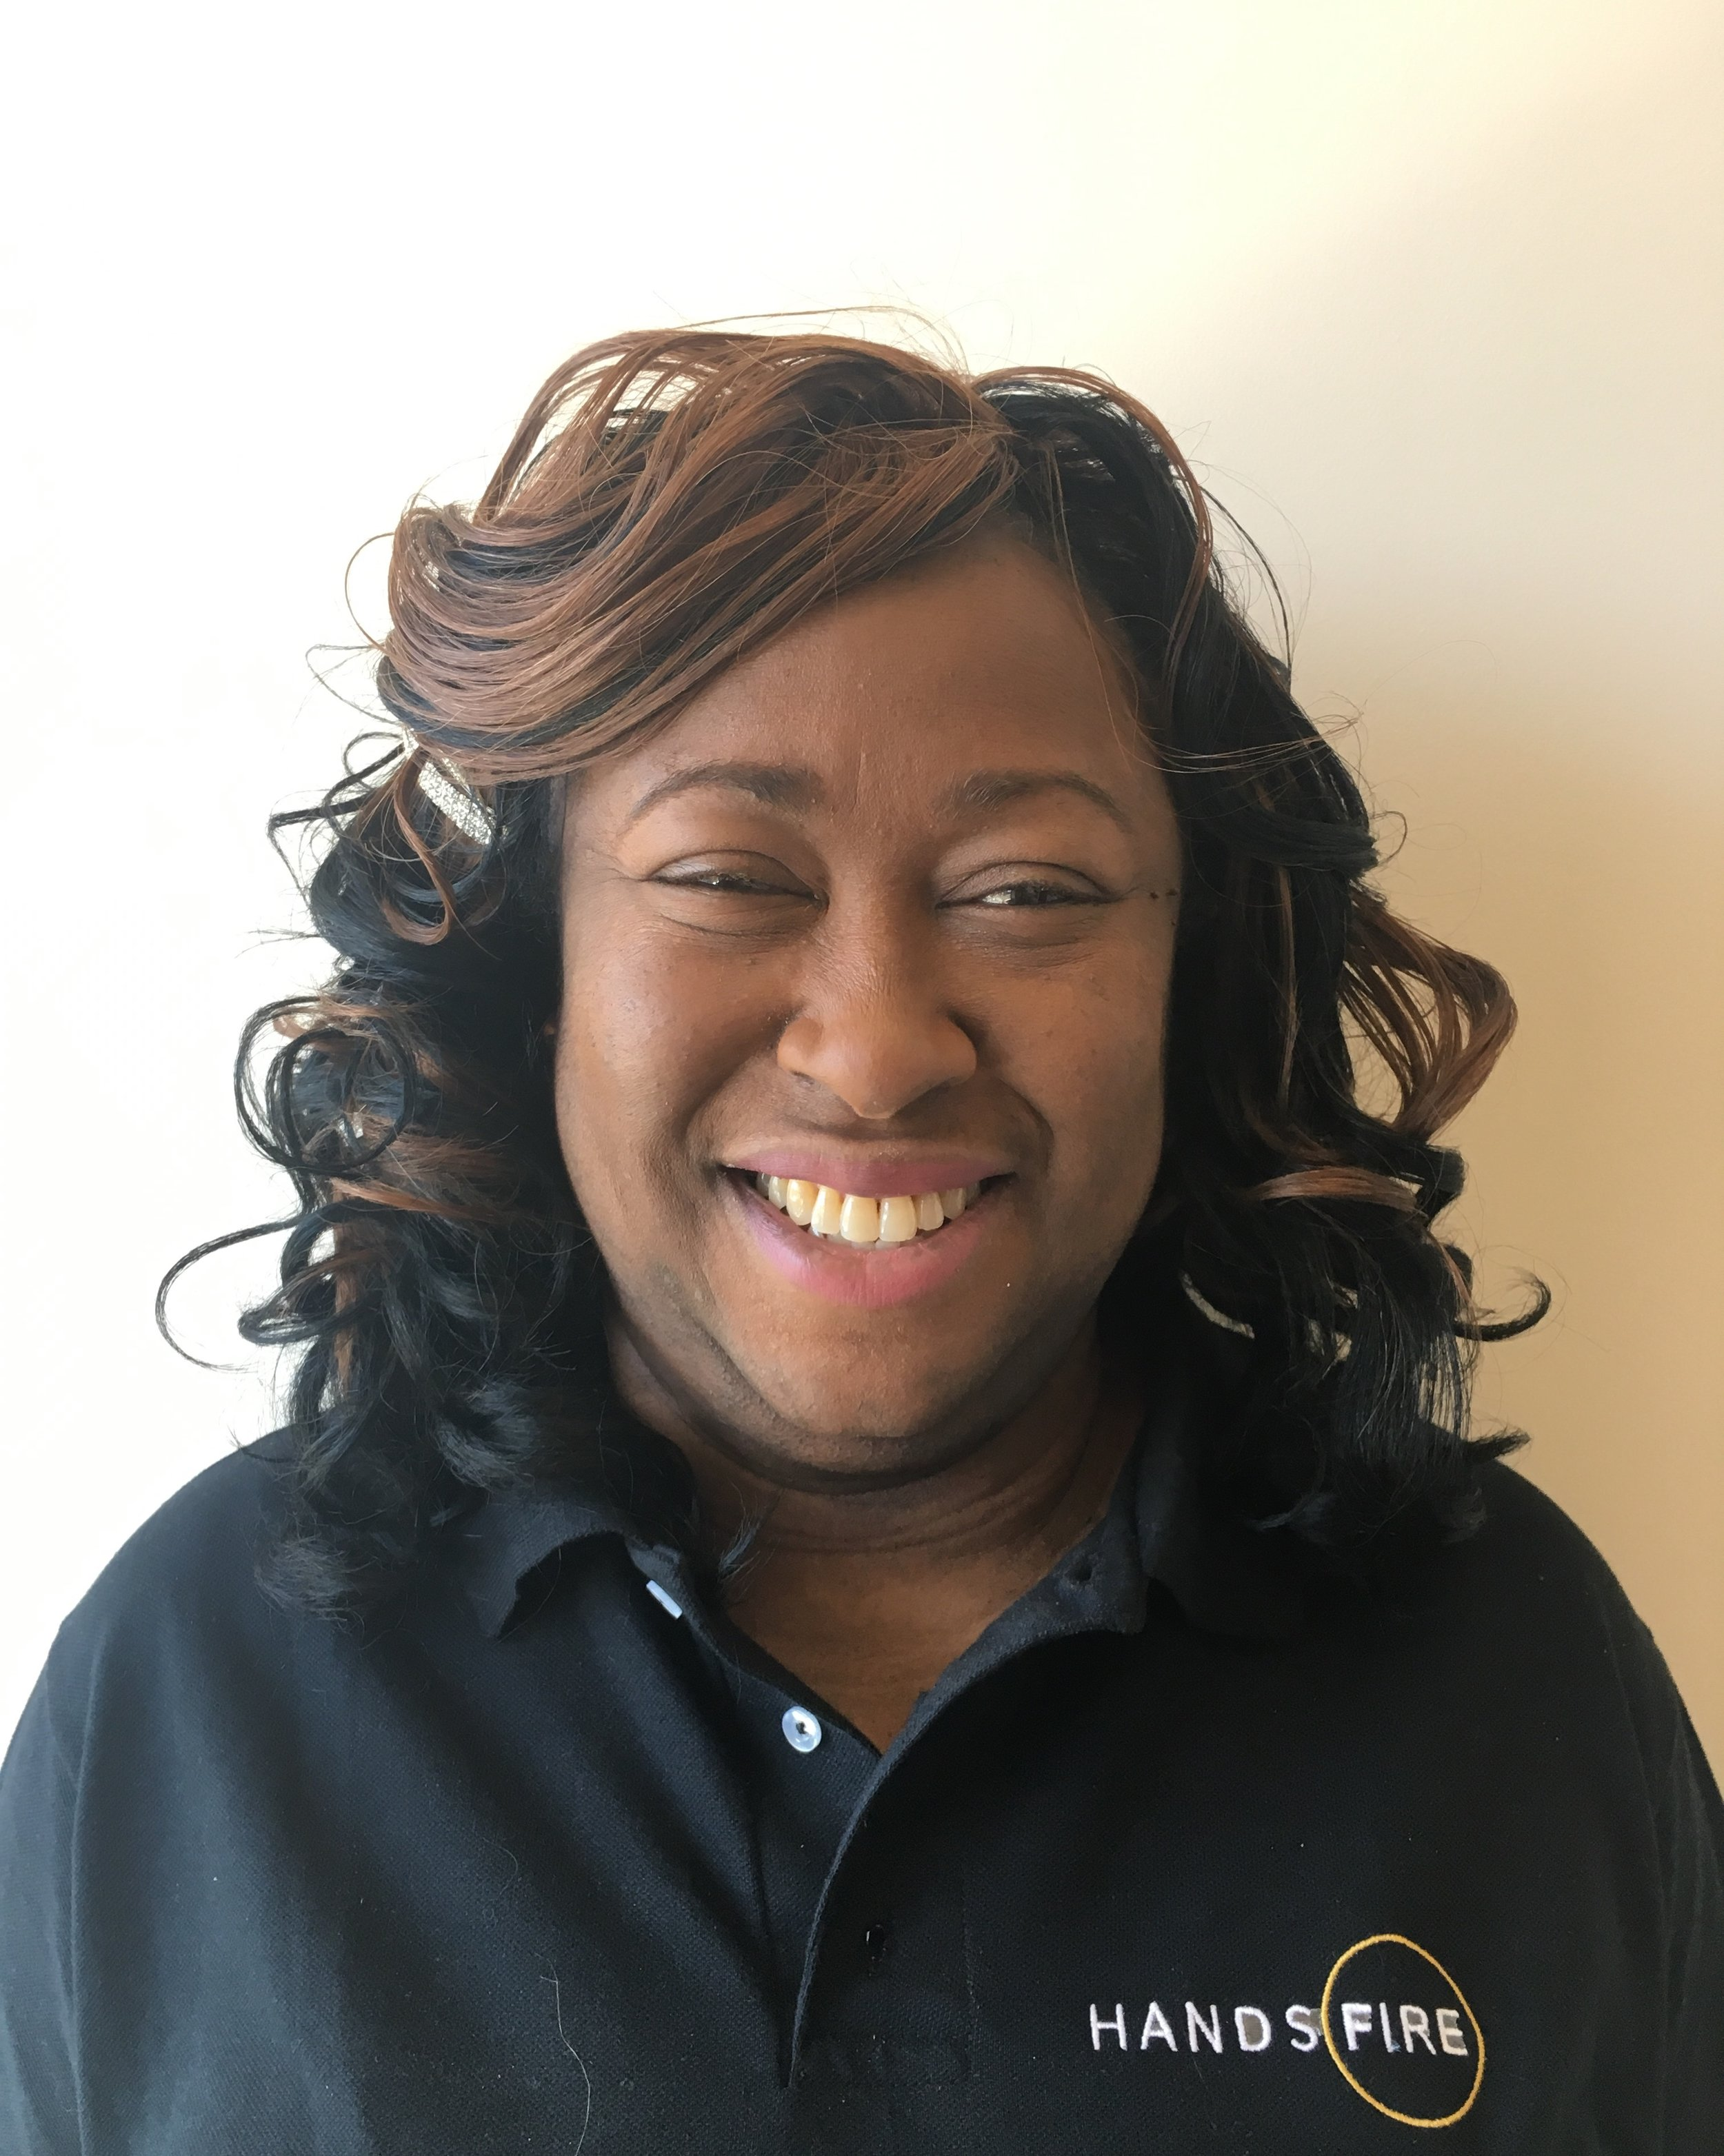 Photo Description: Alicia Modeste smiling wearing a black polo shirt with the Hands of Fire logo on the right hand side.